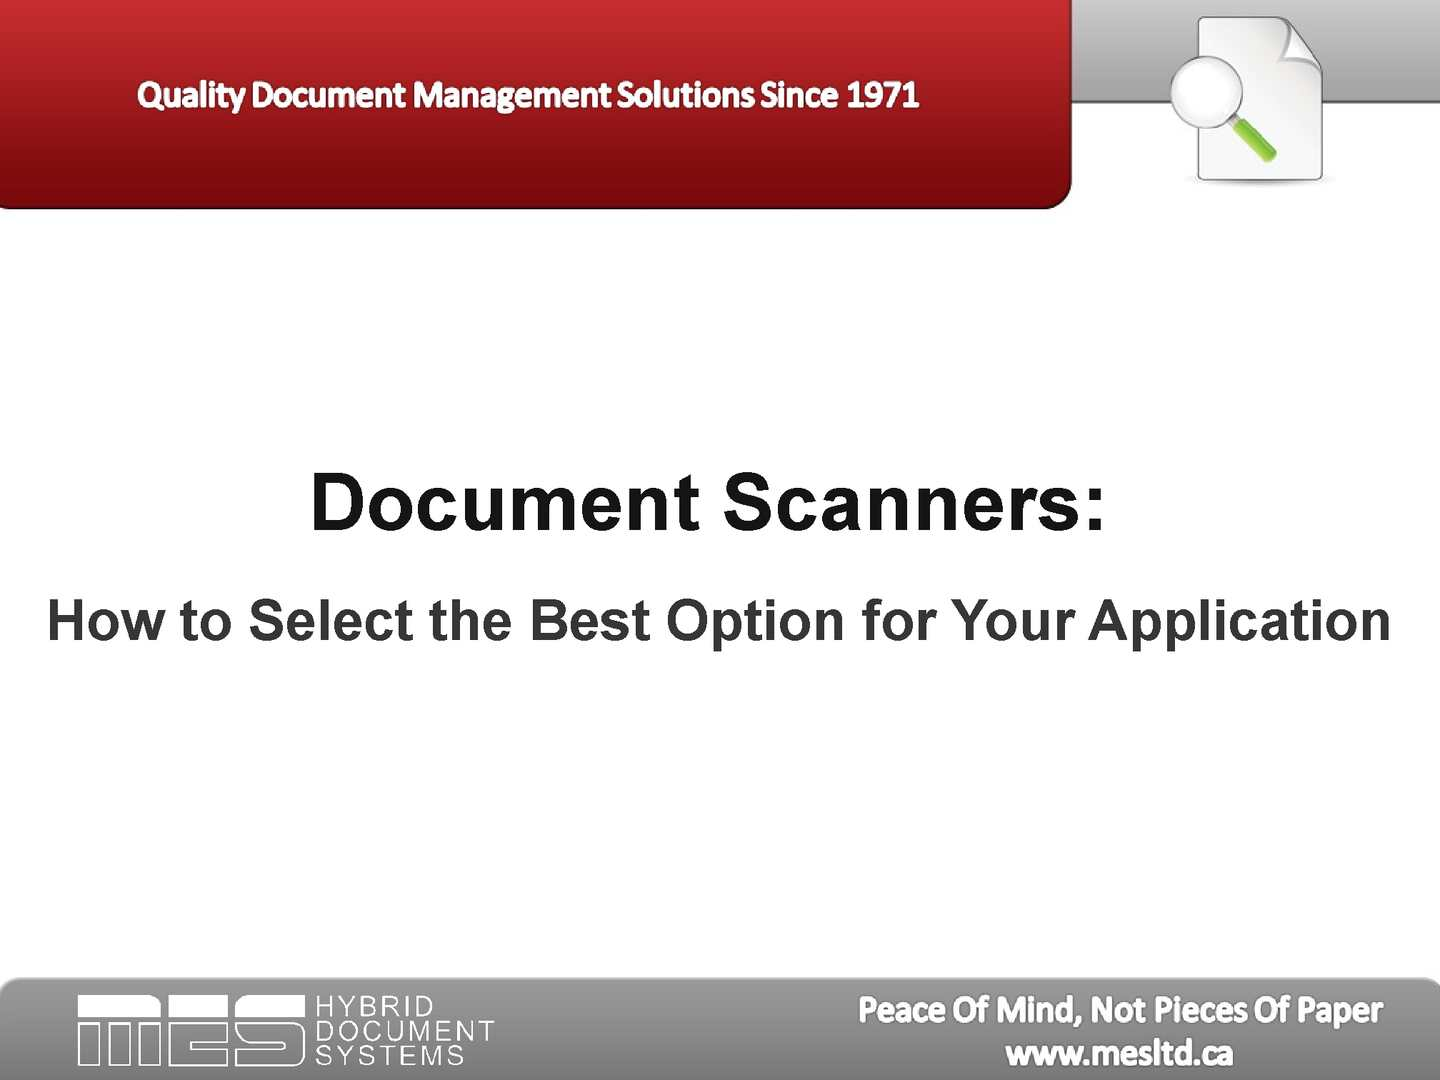 Calaméo - Document Scanners: How to Select the Best Option for Your